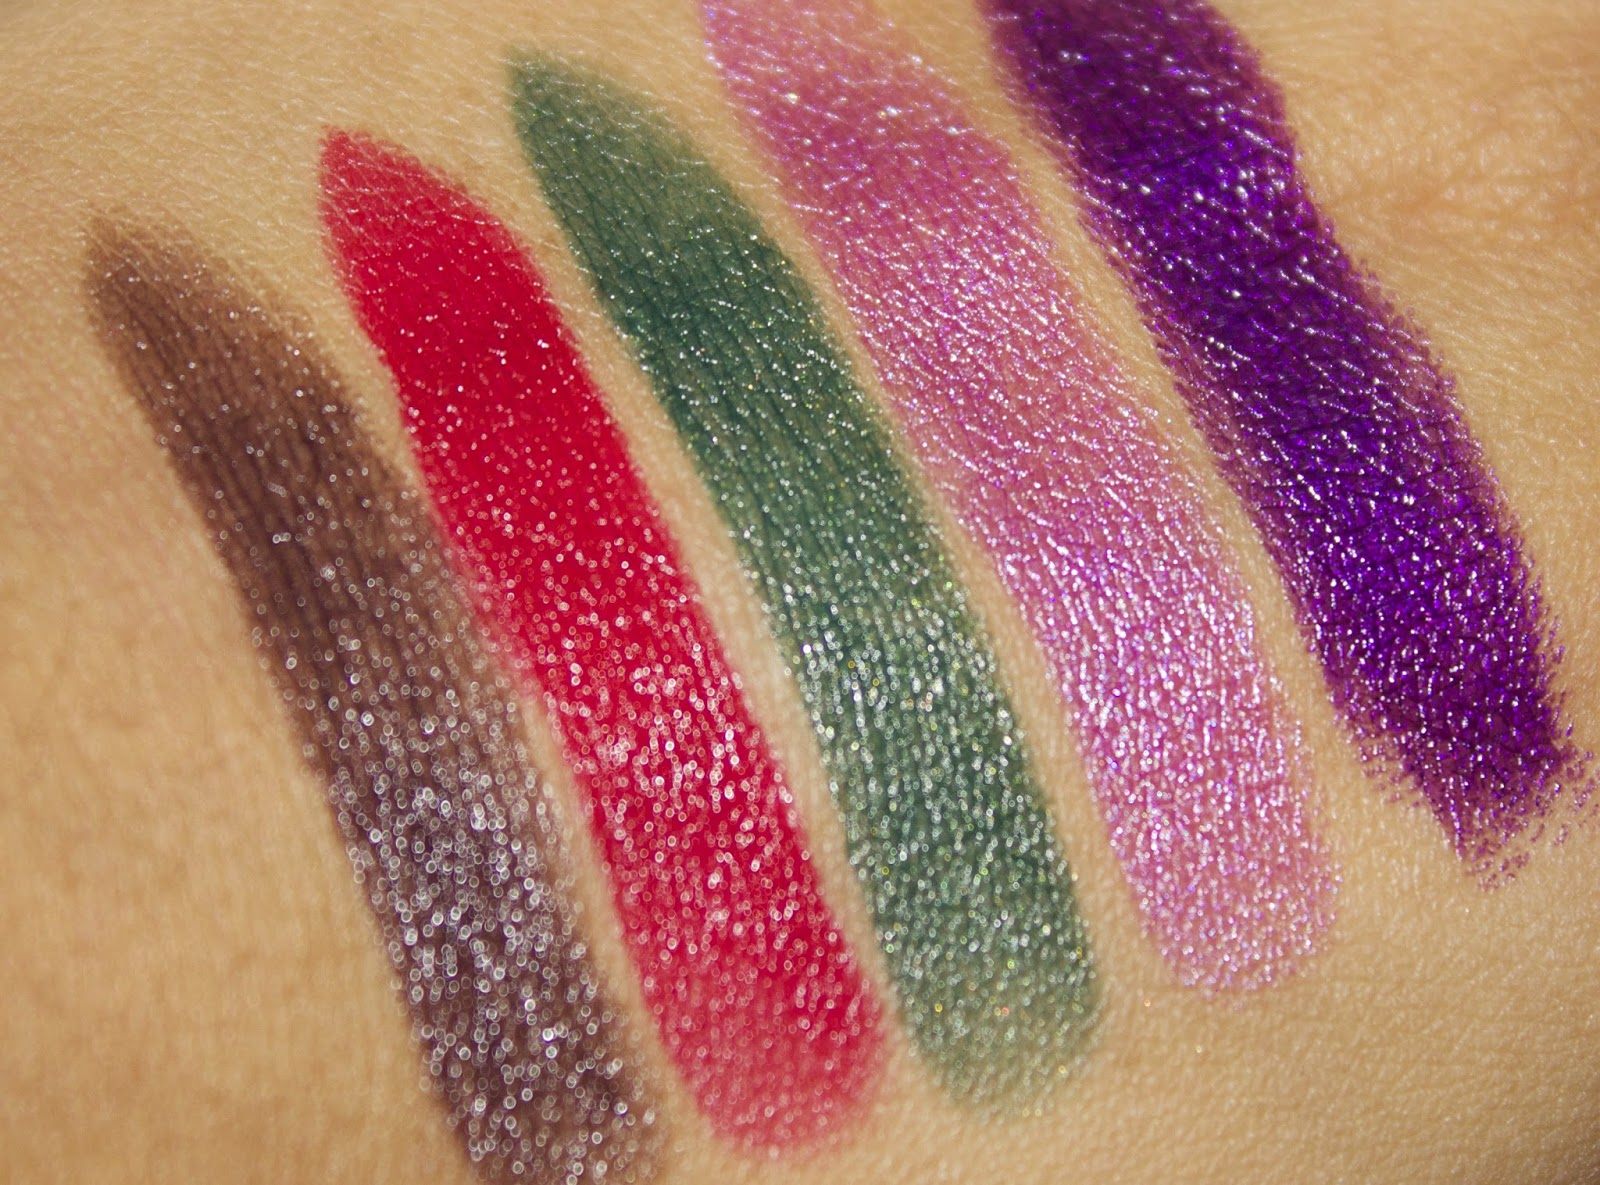 A picture of hand swatches of the Makeup Revolution Atomic lipsticks